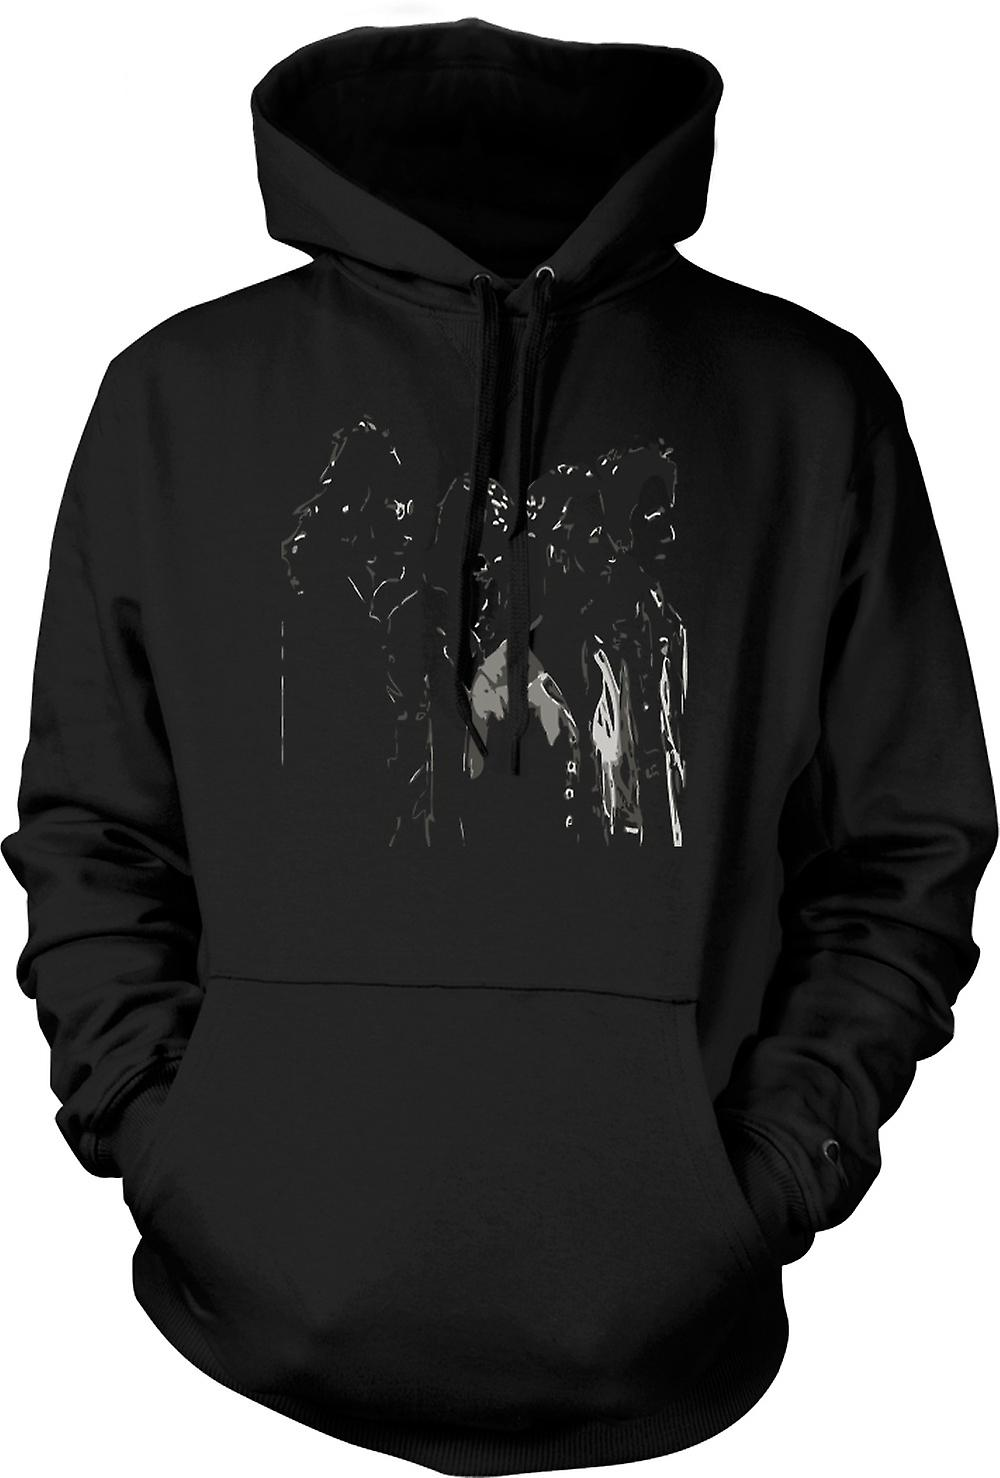 Mens Hoodie - The Beatles - Band - Pop Art